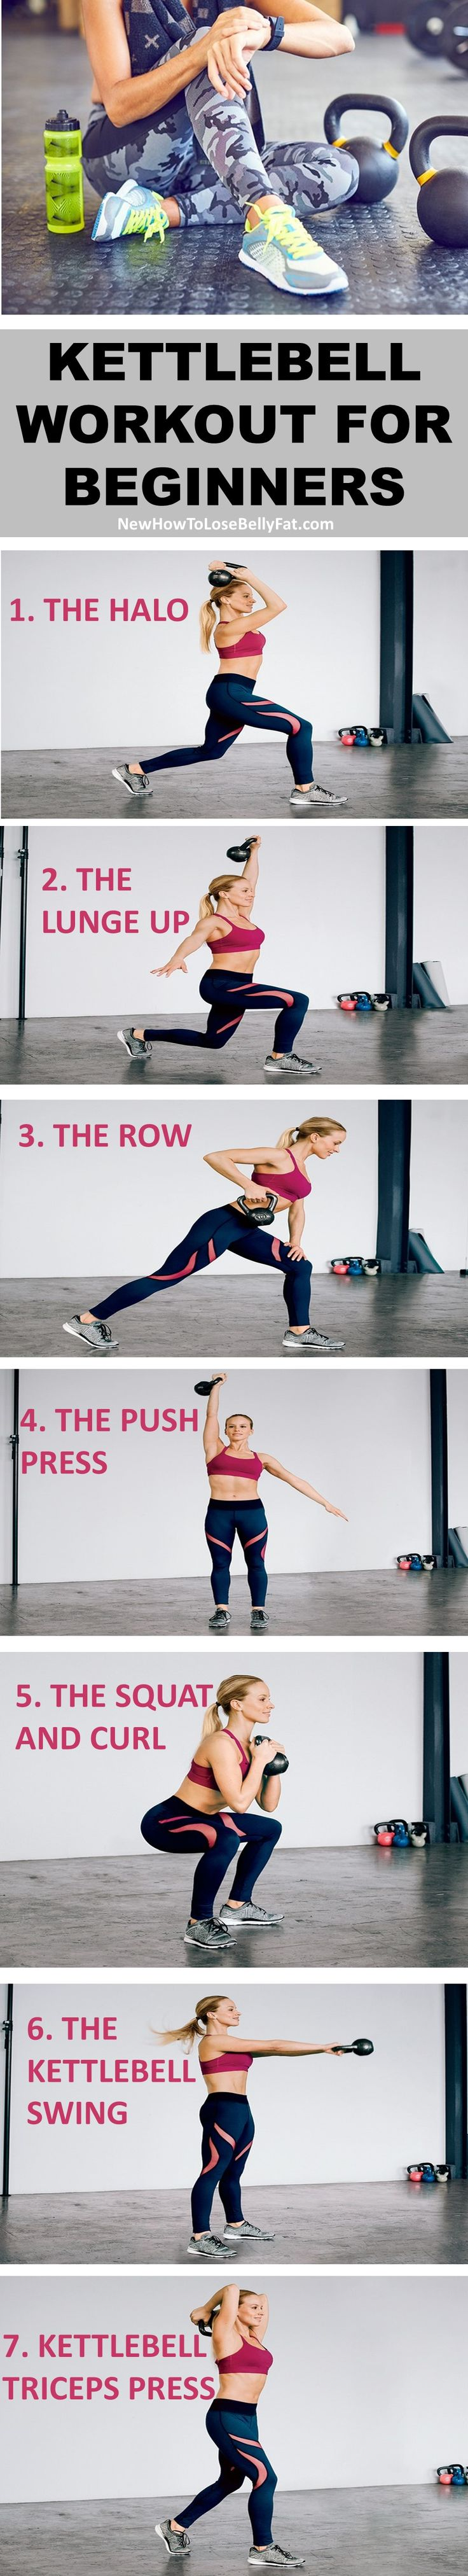 The kettlebell workout that will get even beginners off to a great start. | Posted By: AdvancedWeightLossTips.com